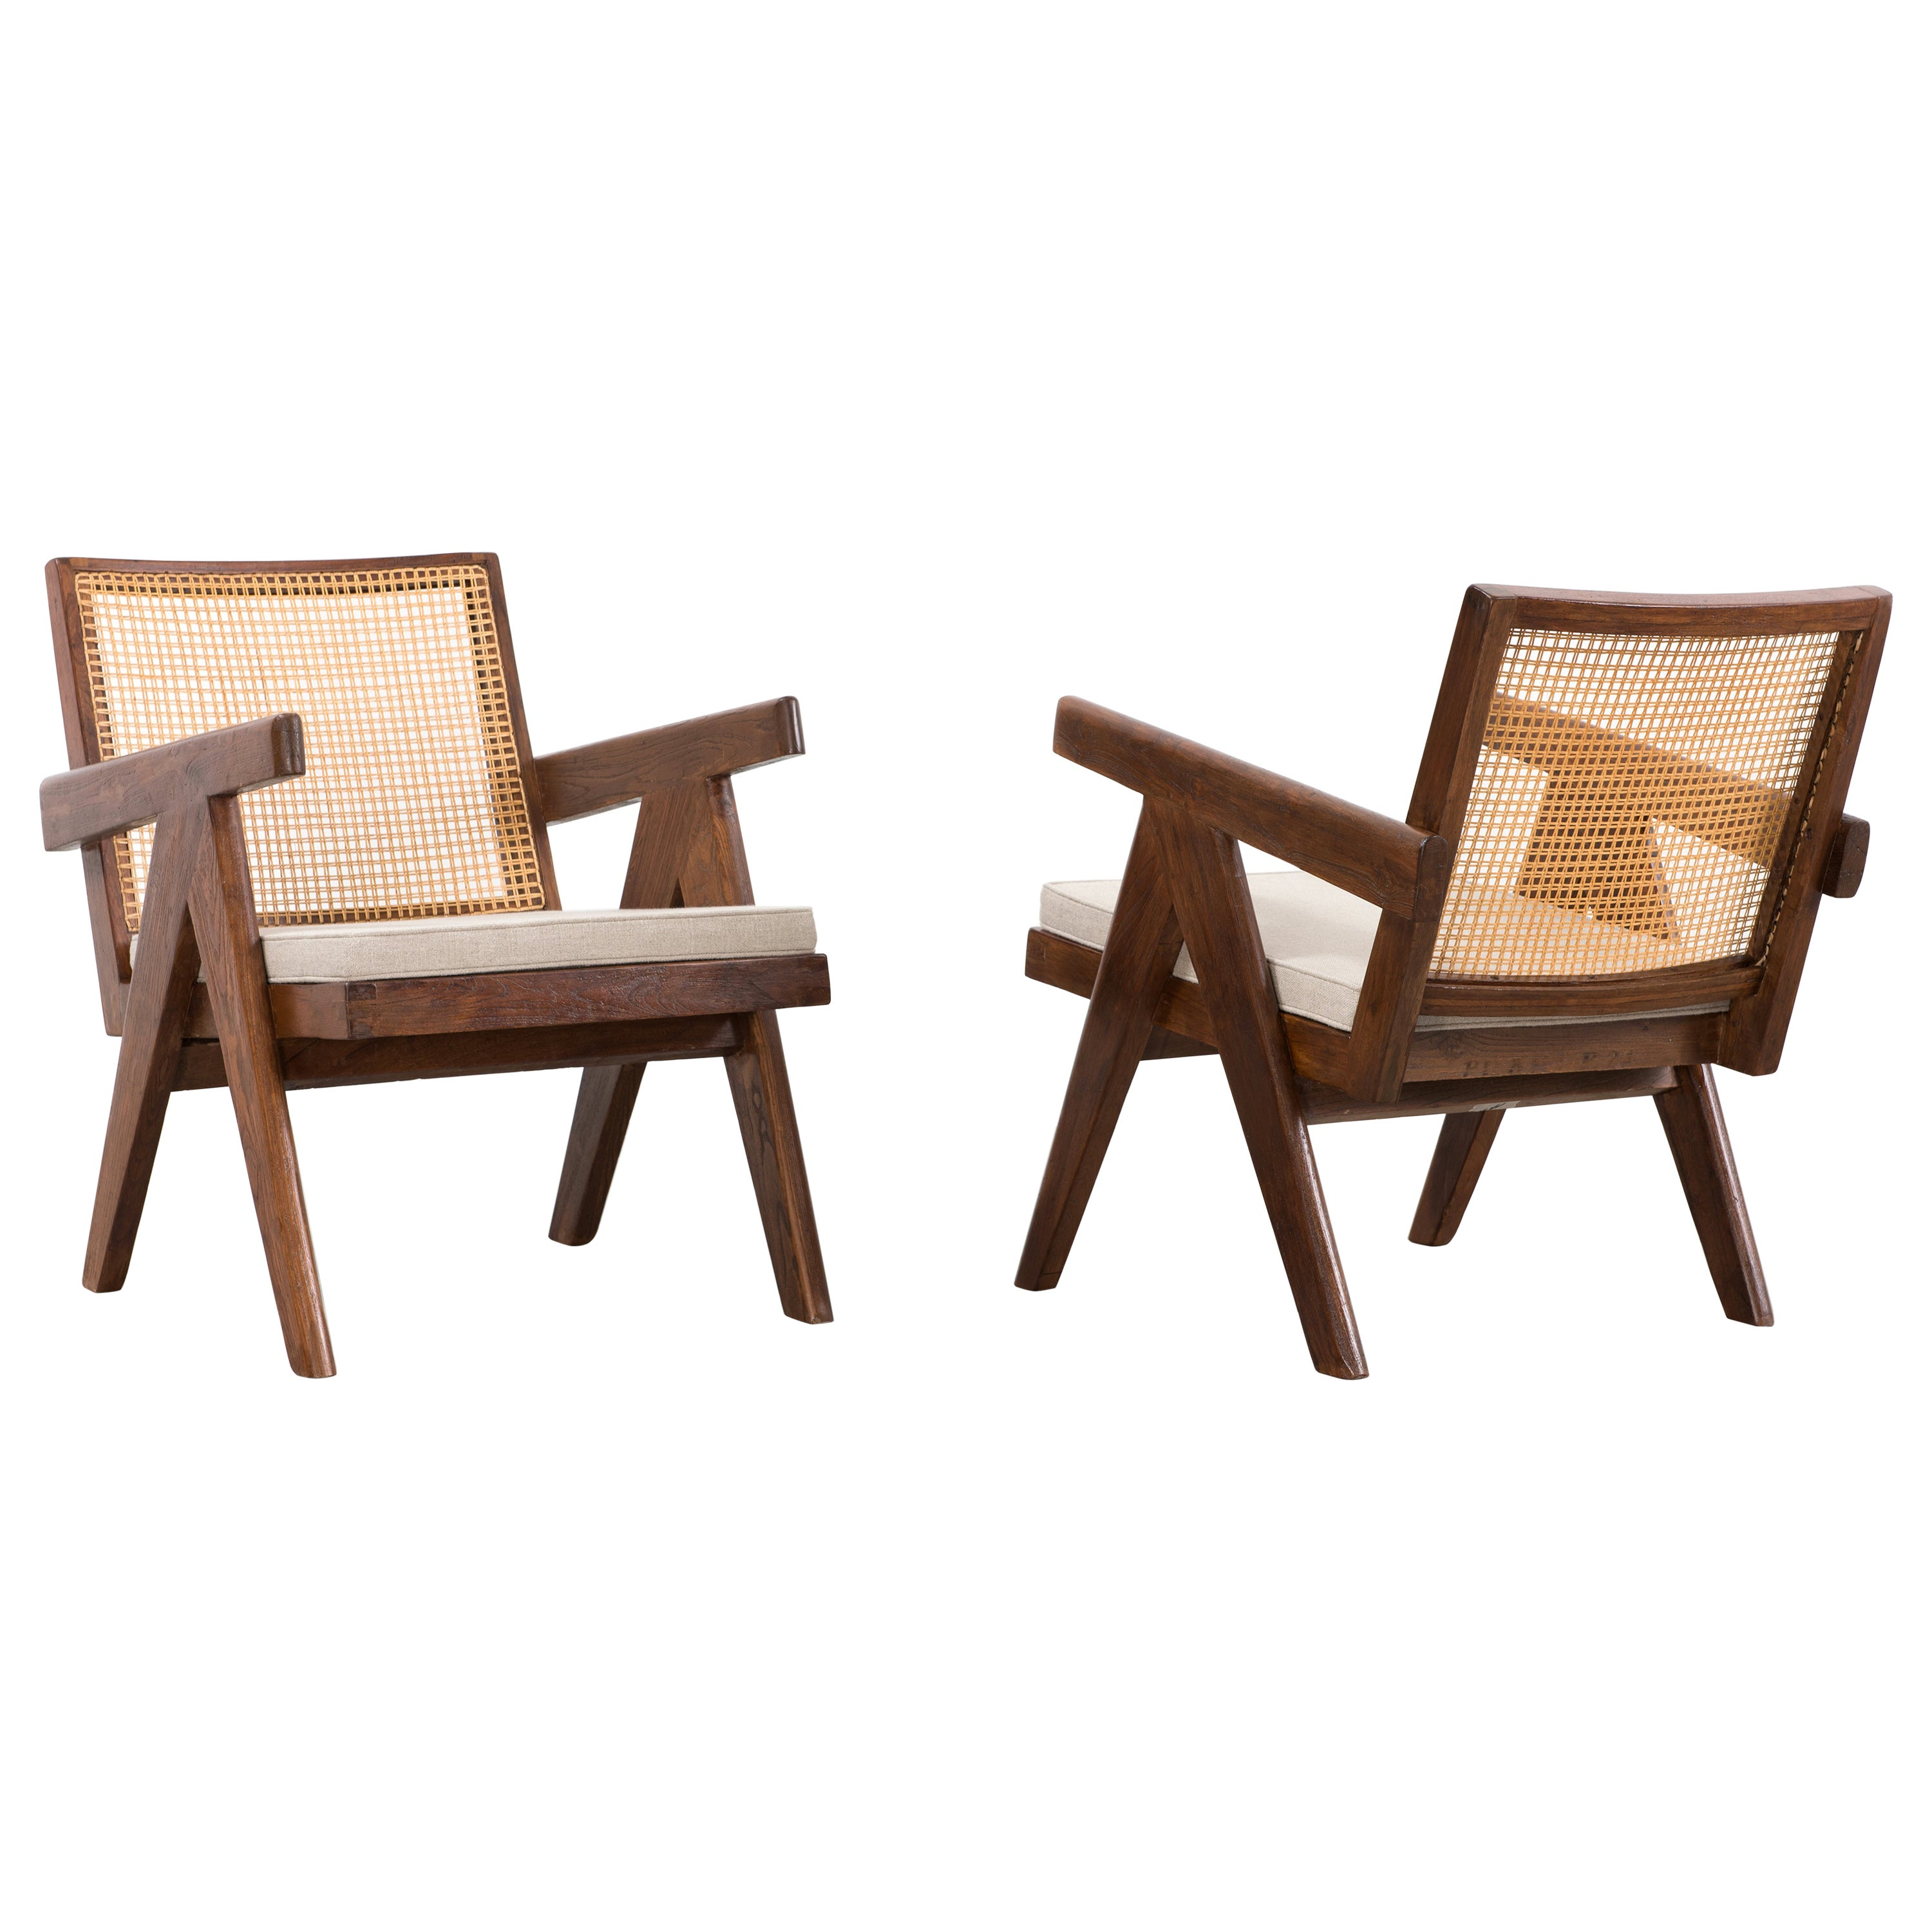 Pierre Jeanneret, Pair of Easy Armchairs, circa 1955-1956